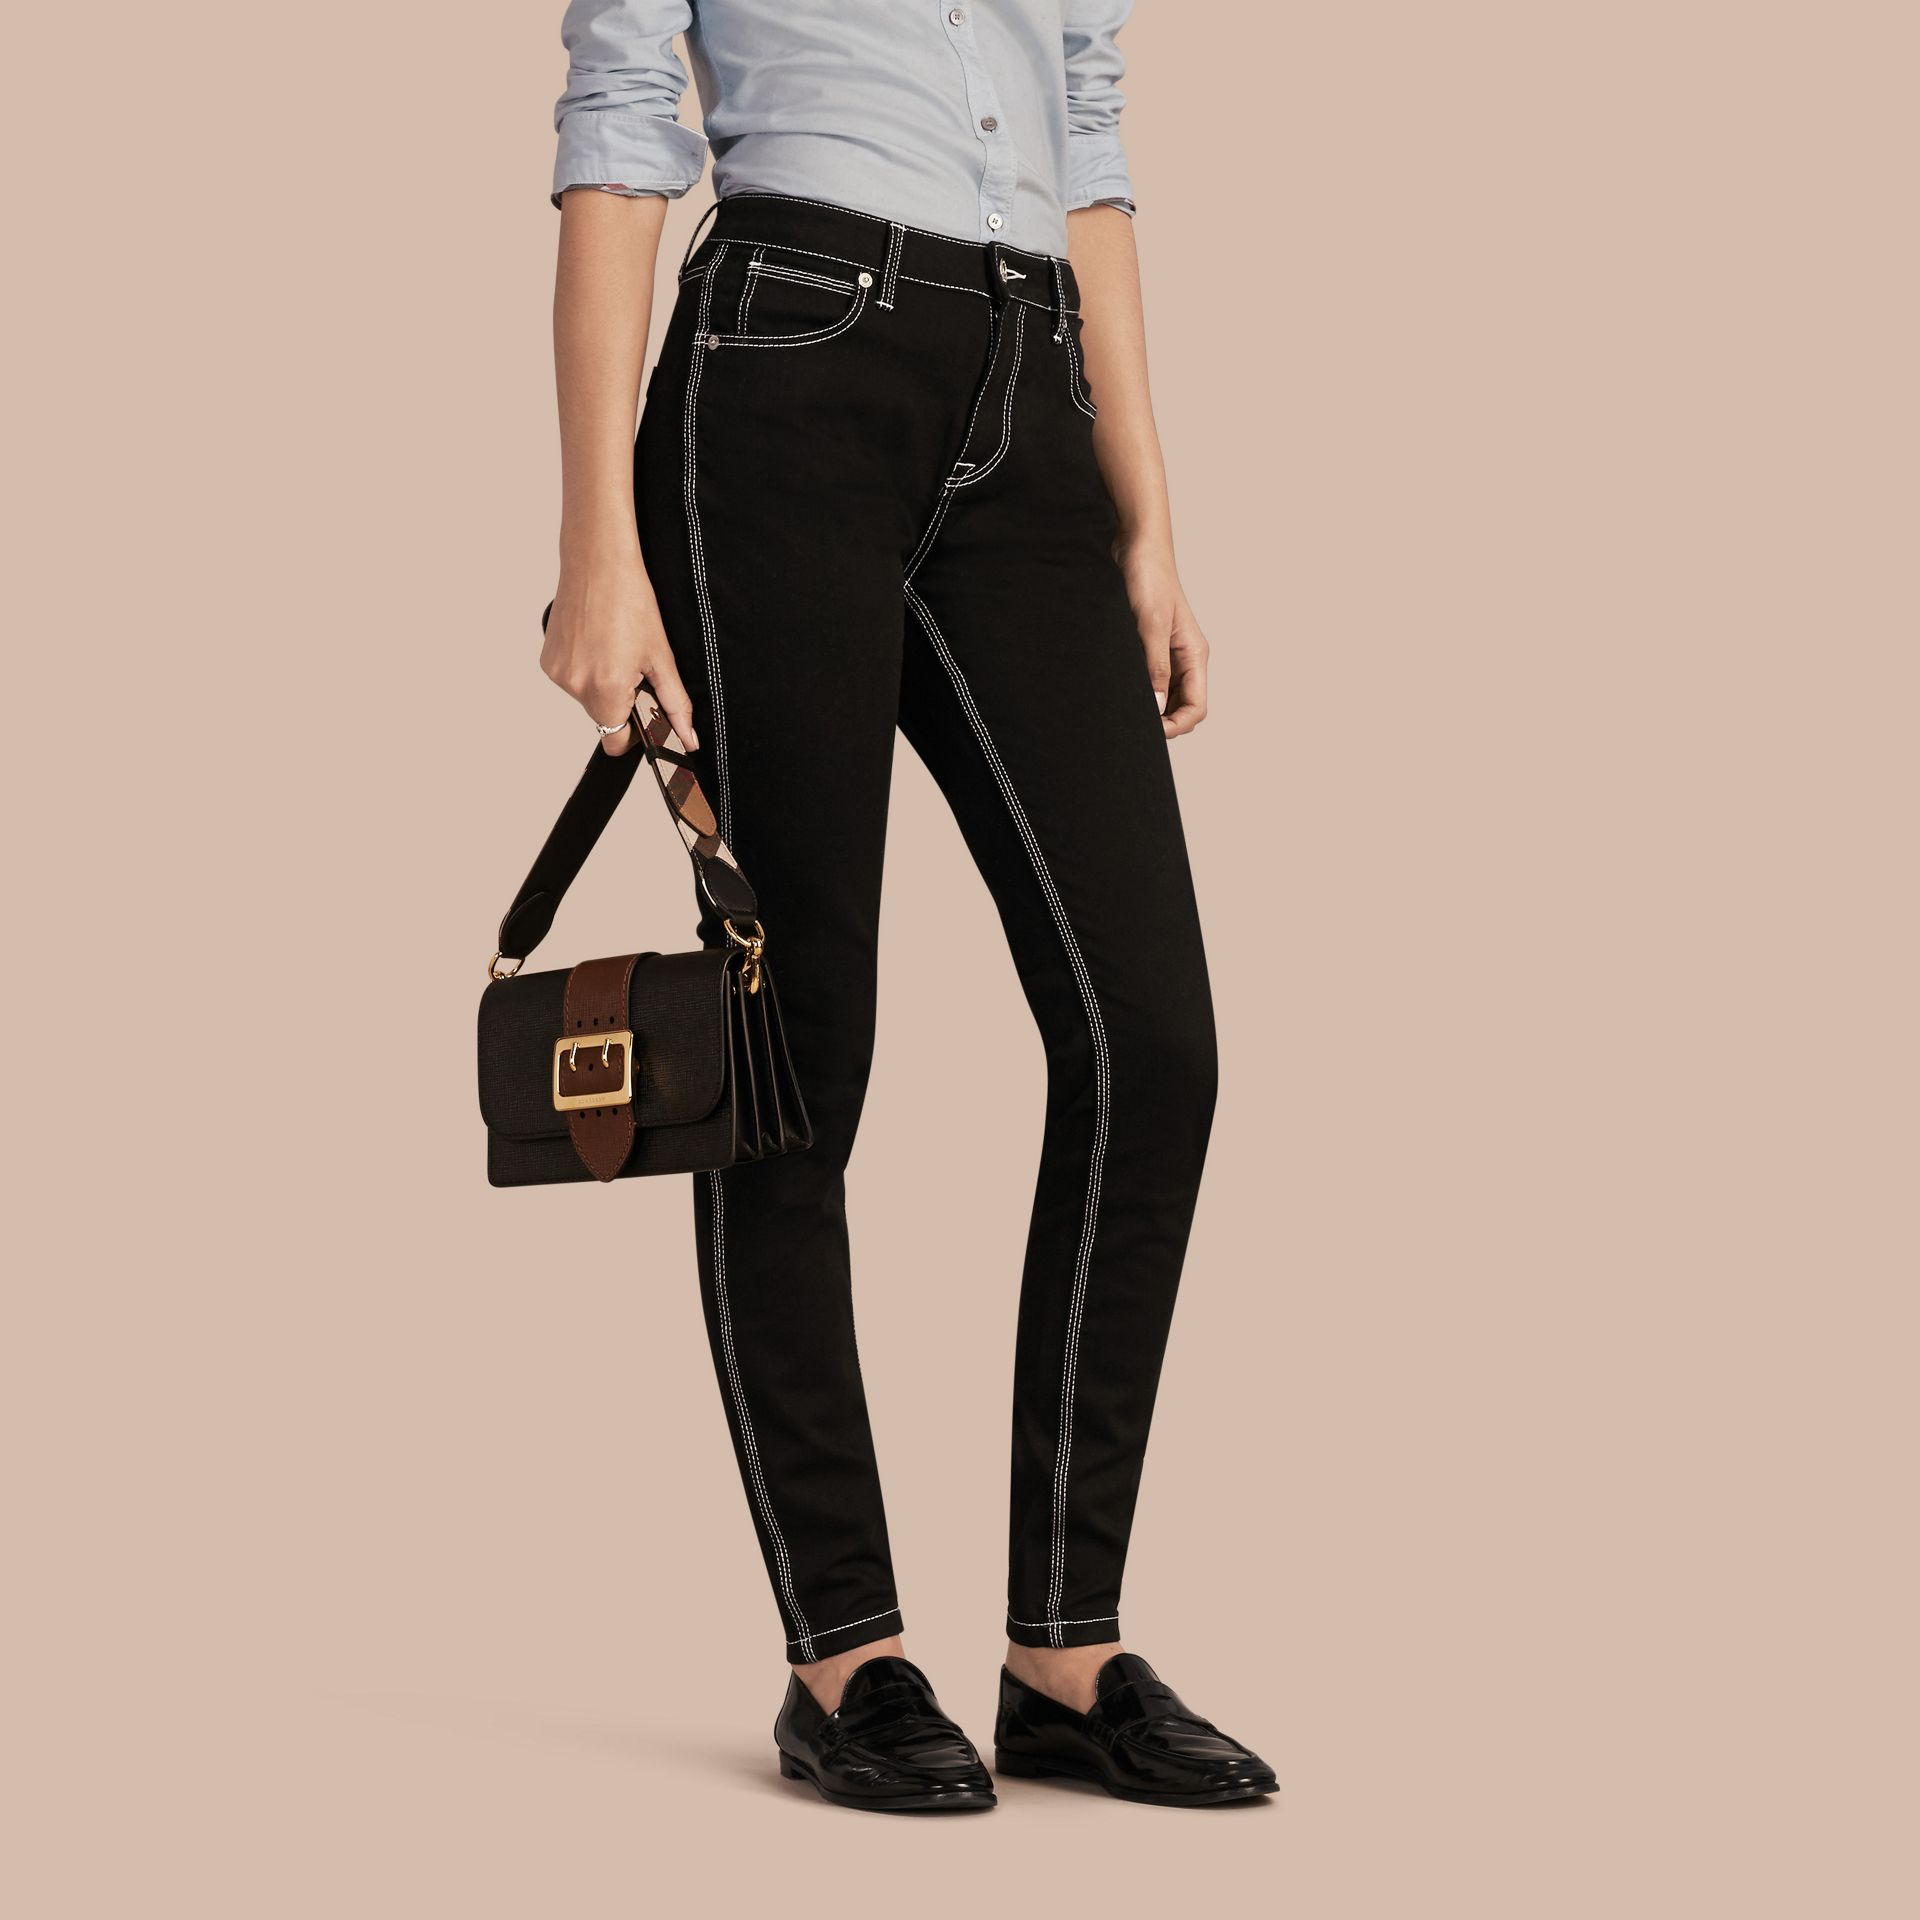 Black Skinny Fit Stretch Jeans with Contrast Topstitching - gallery image 1